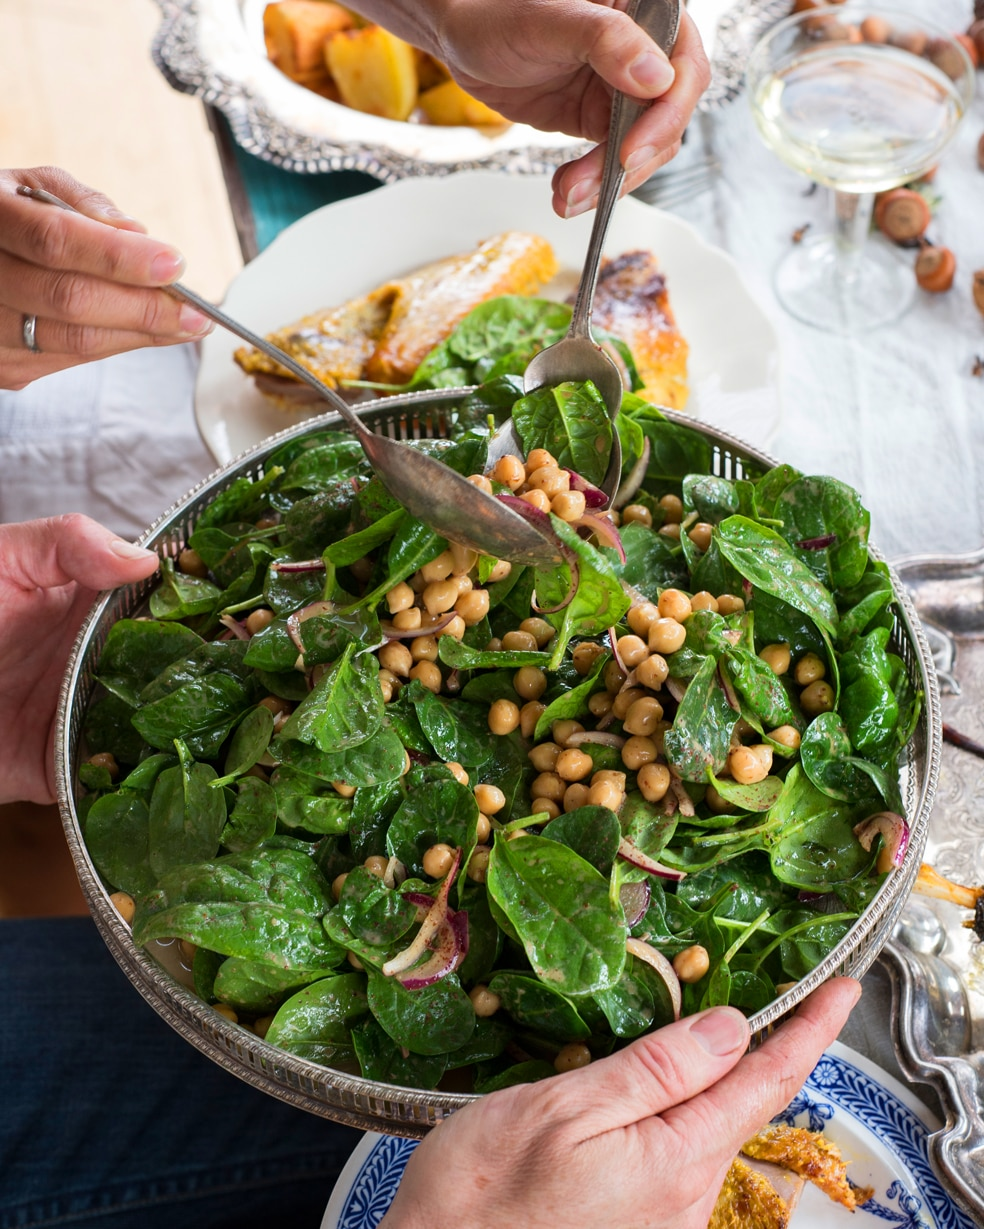 Chickpea And Spinach Salad With Cumin Dressing Recipes — Dishmaps